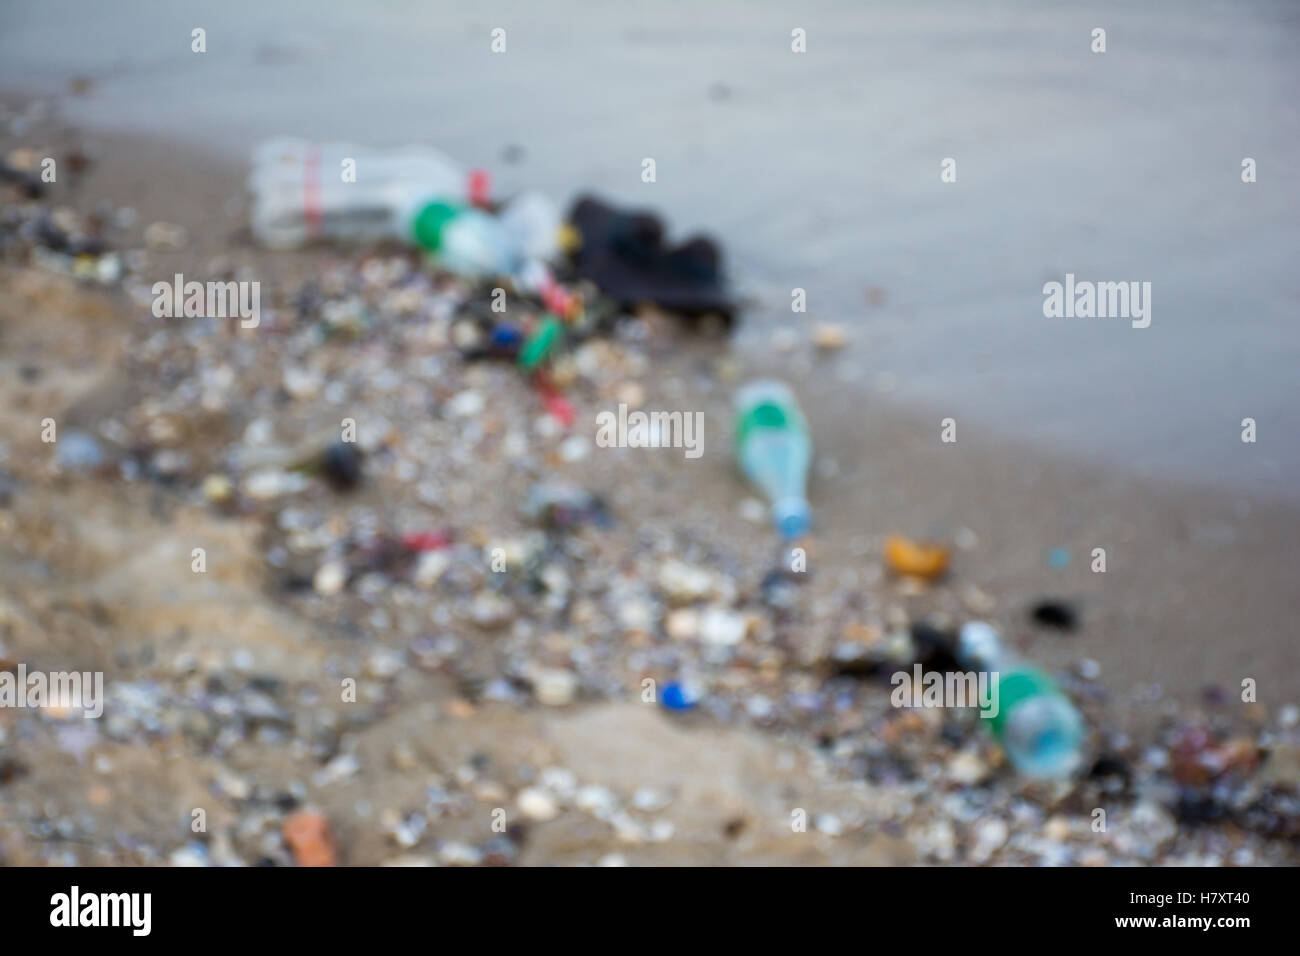 Pollution at the beach with blurred background - Stock Image